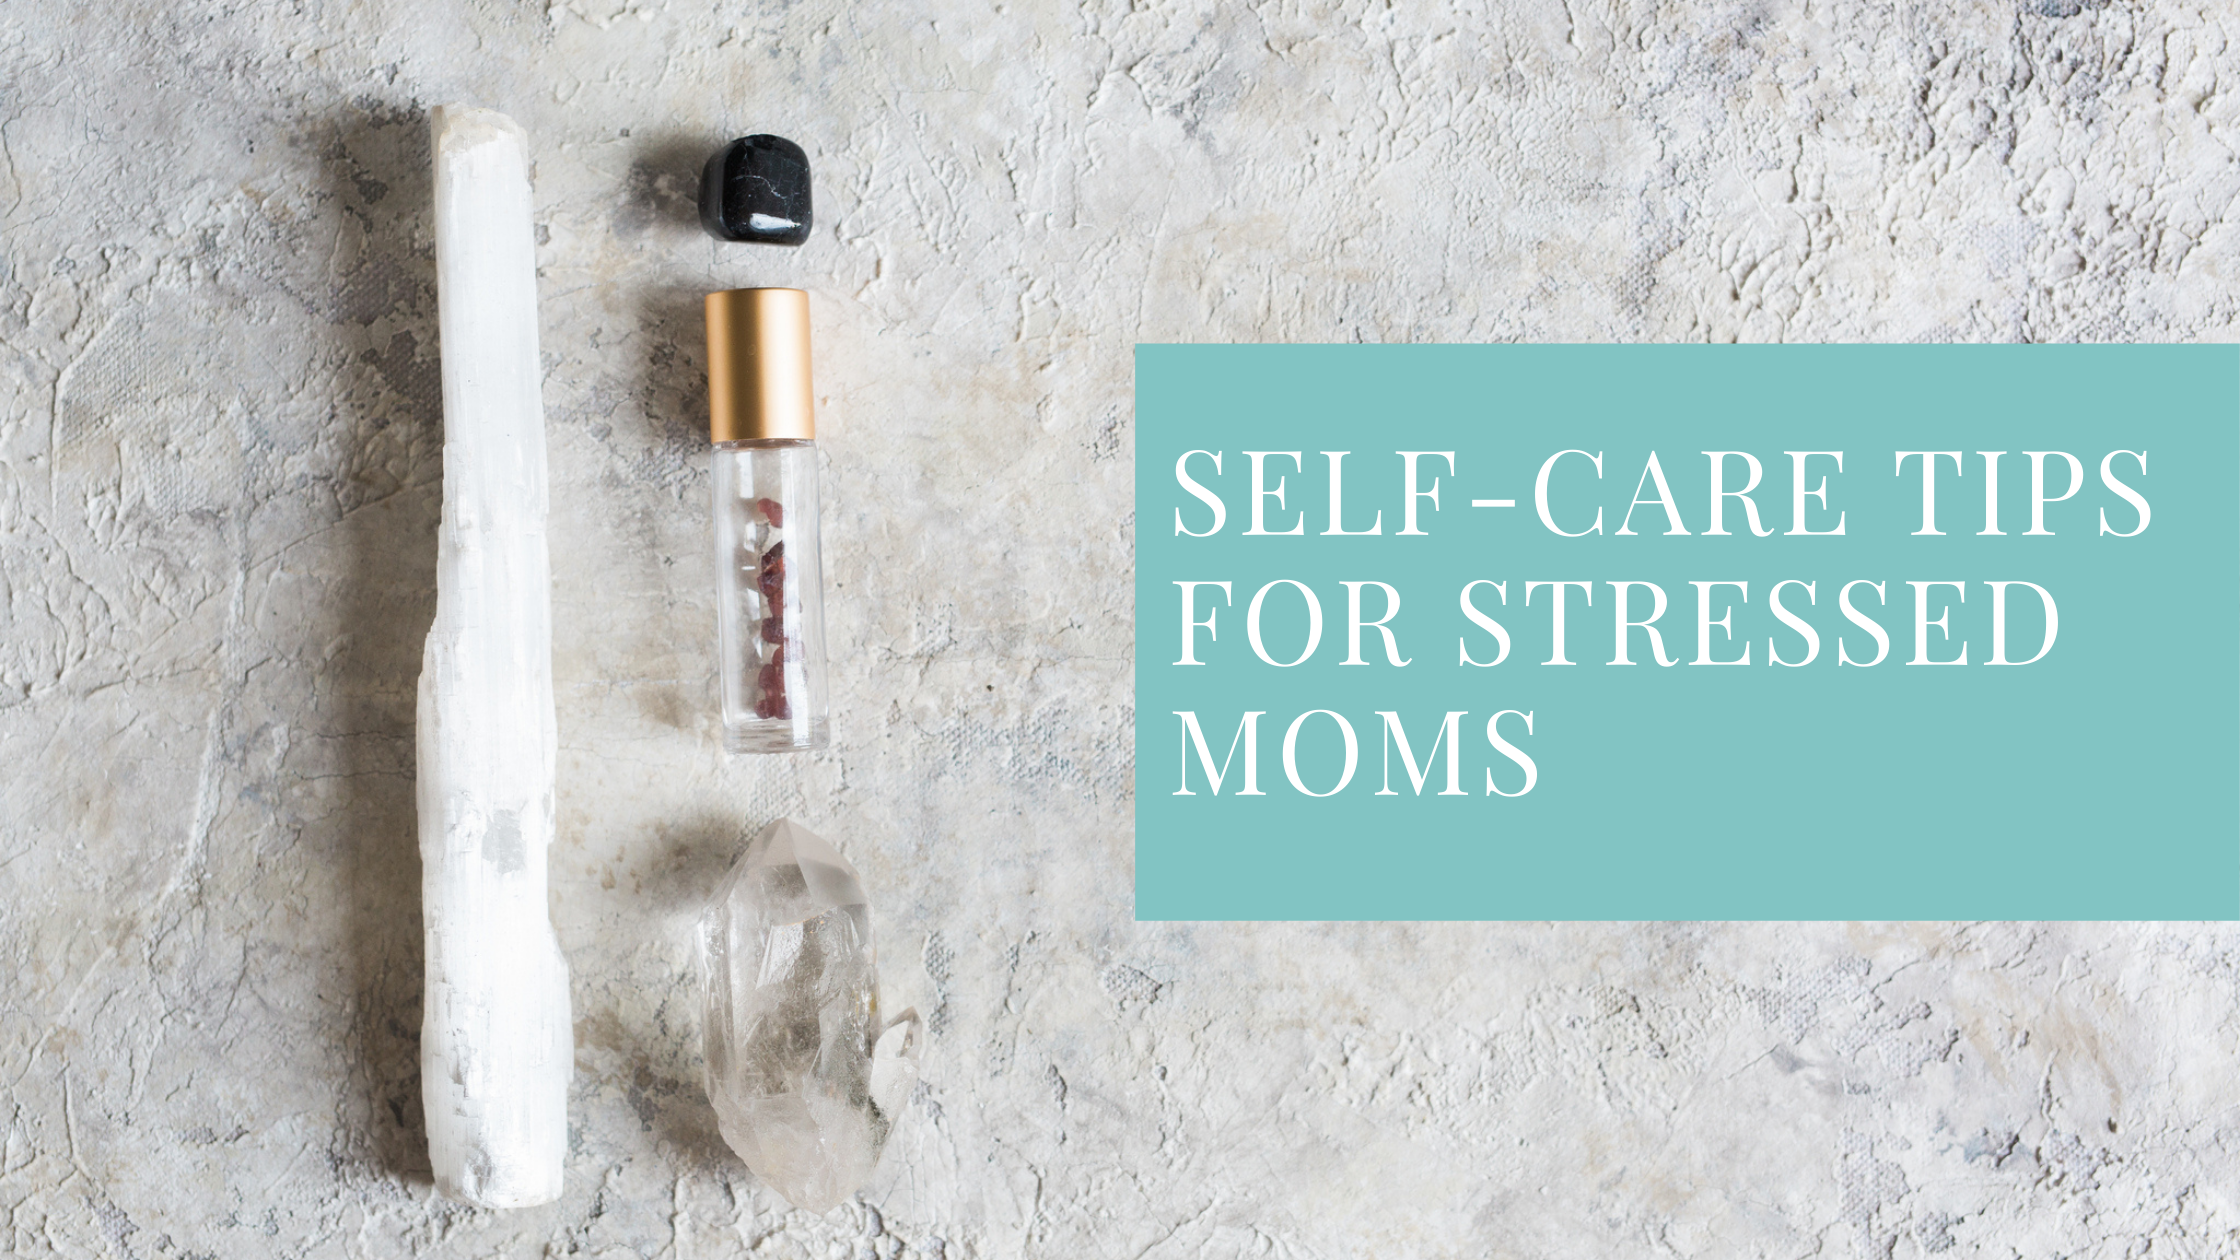 Self-Care Tips for Stressed Moms